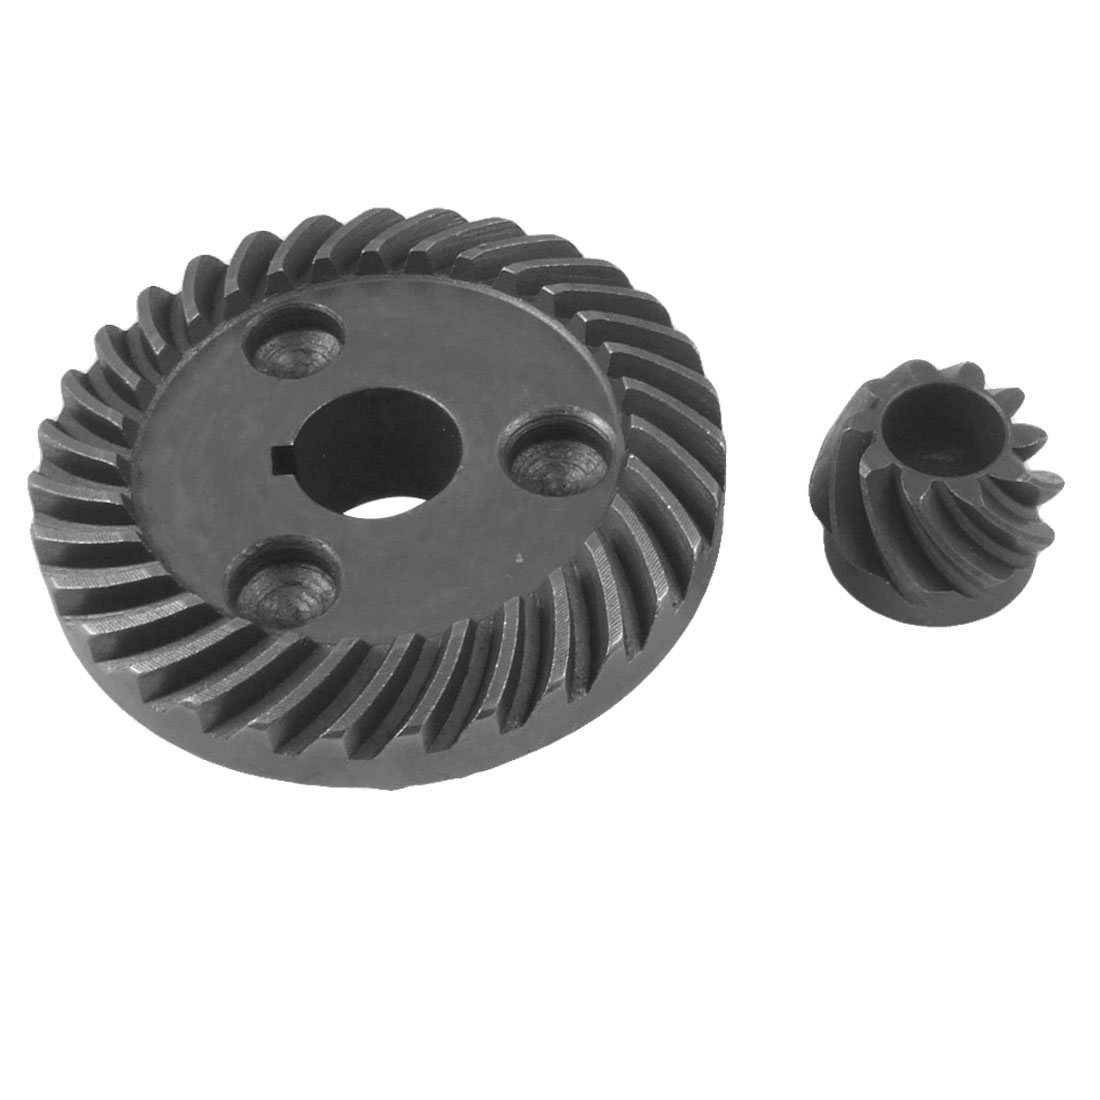 Replacement Part Metal Spiral Bevel Gear 2 Pcs Set